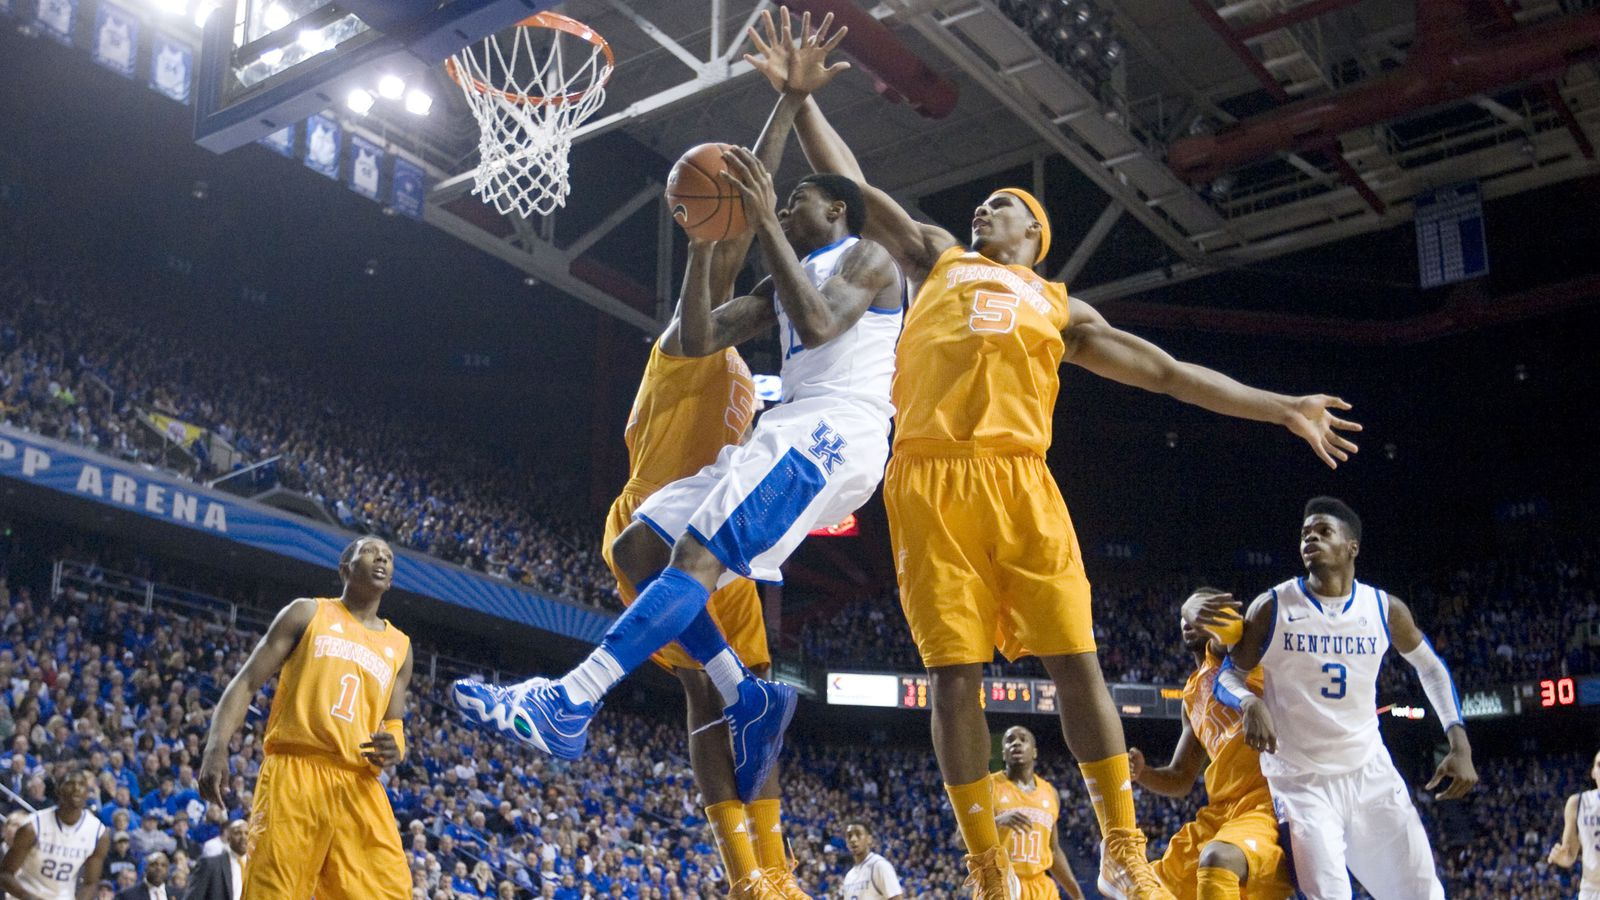 Tennessee Volunteers Vs. Kentucky Wildcats: Game Thread